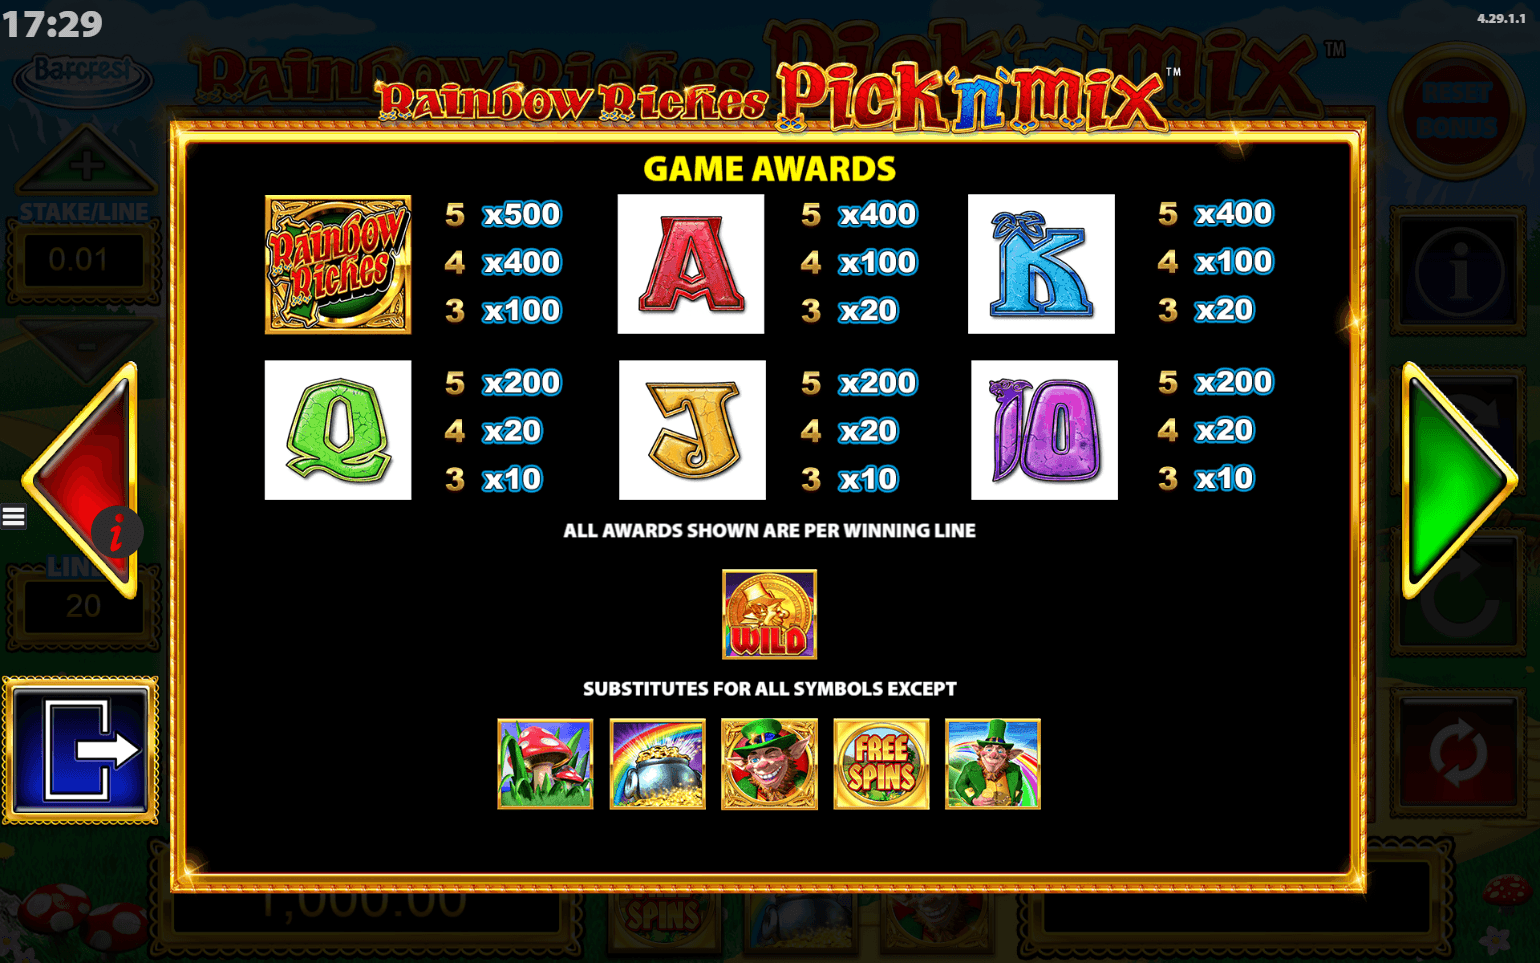 rainbow riches pick n mix game awards